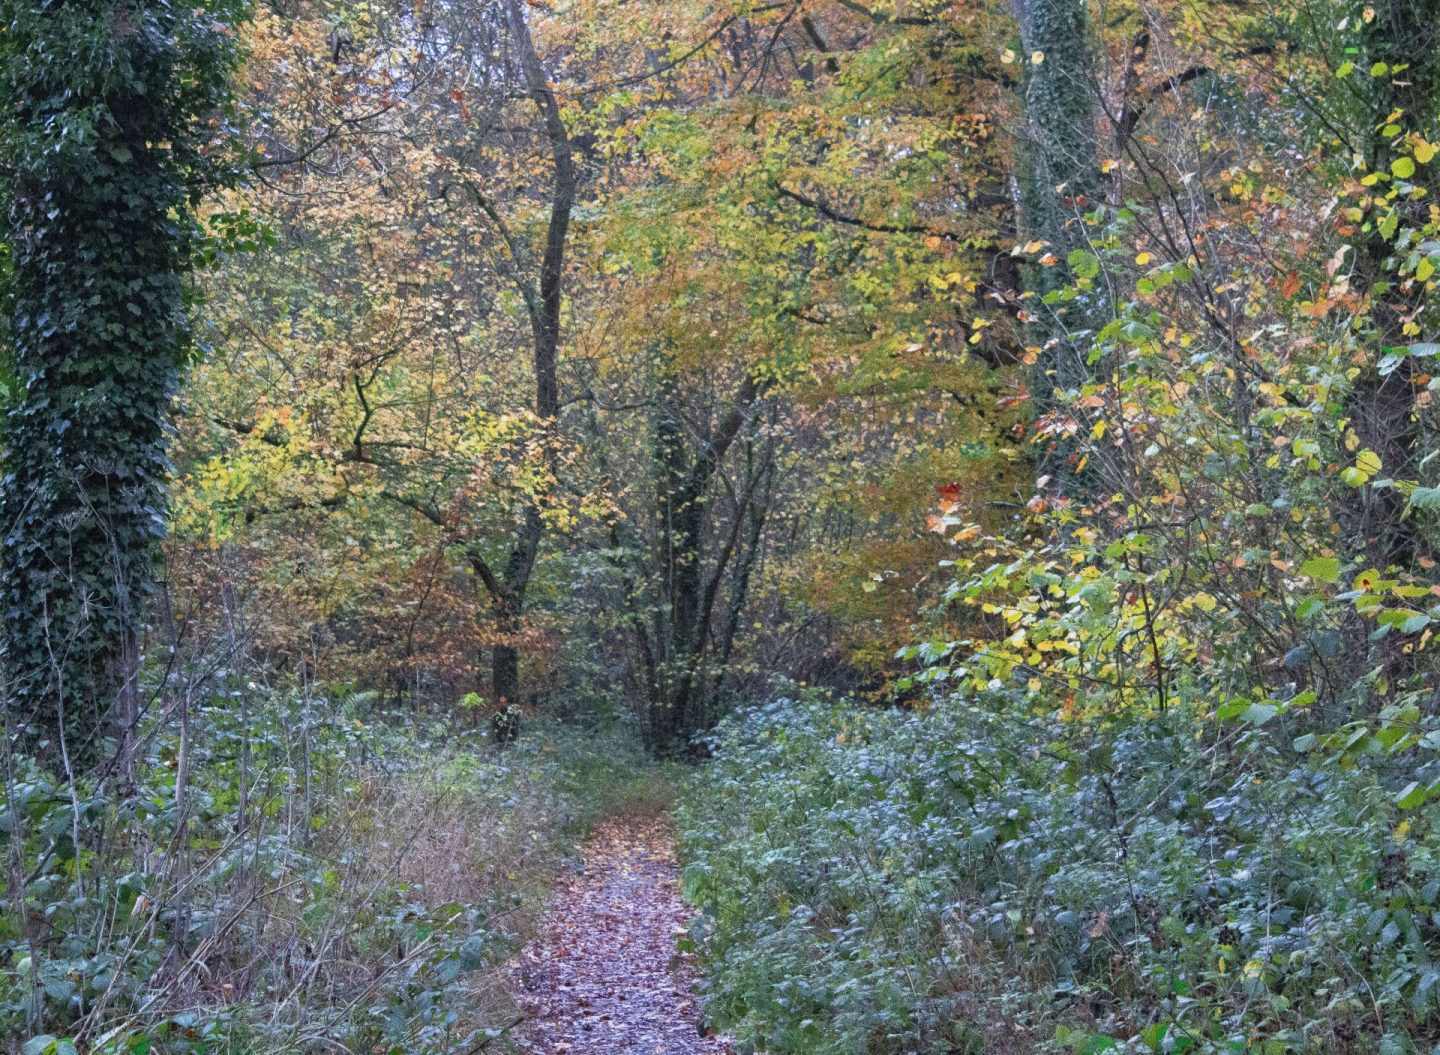 autumn colours on display in a forest